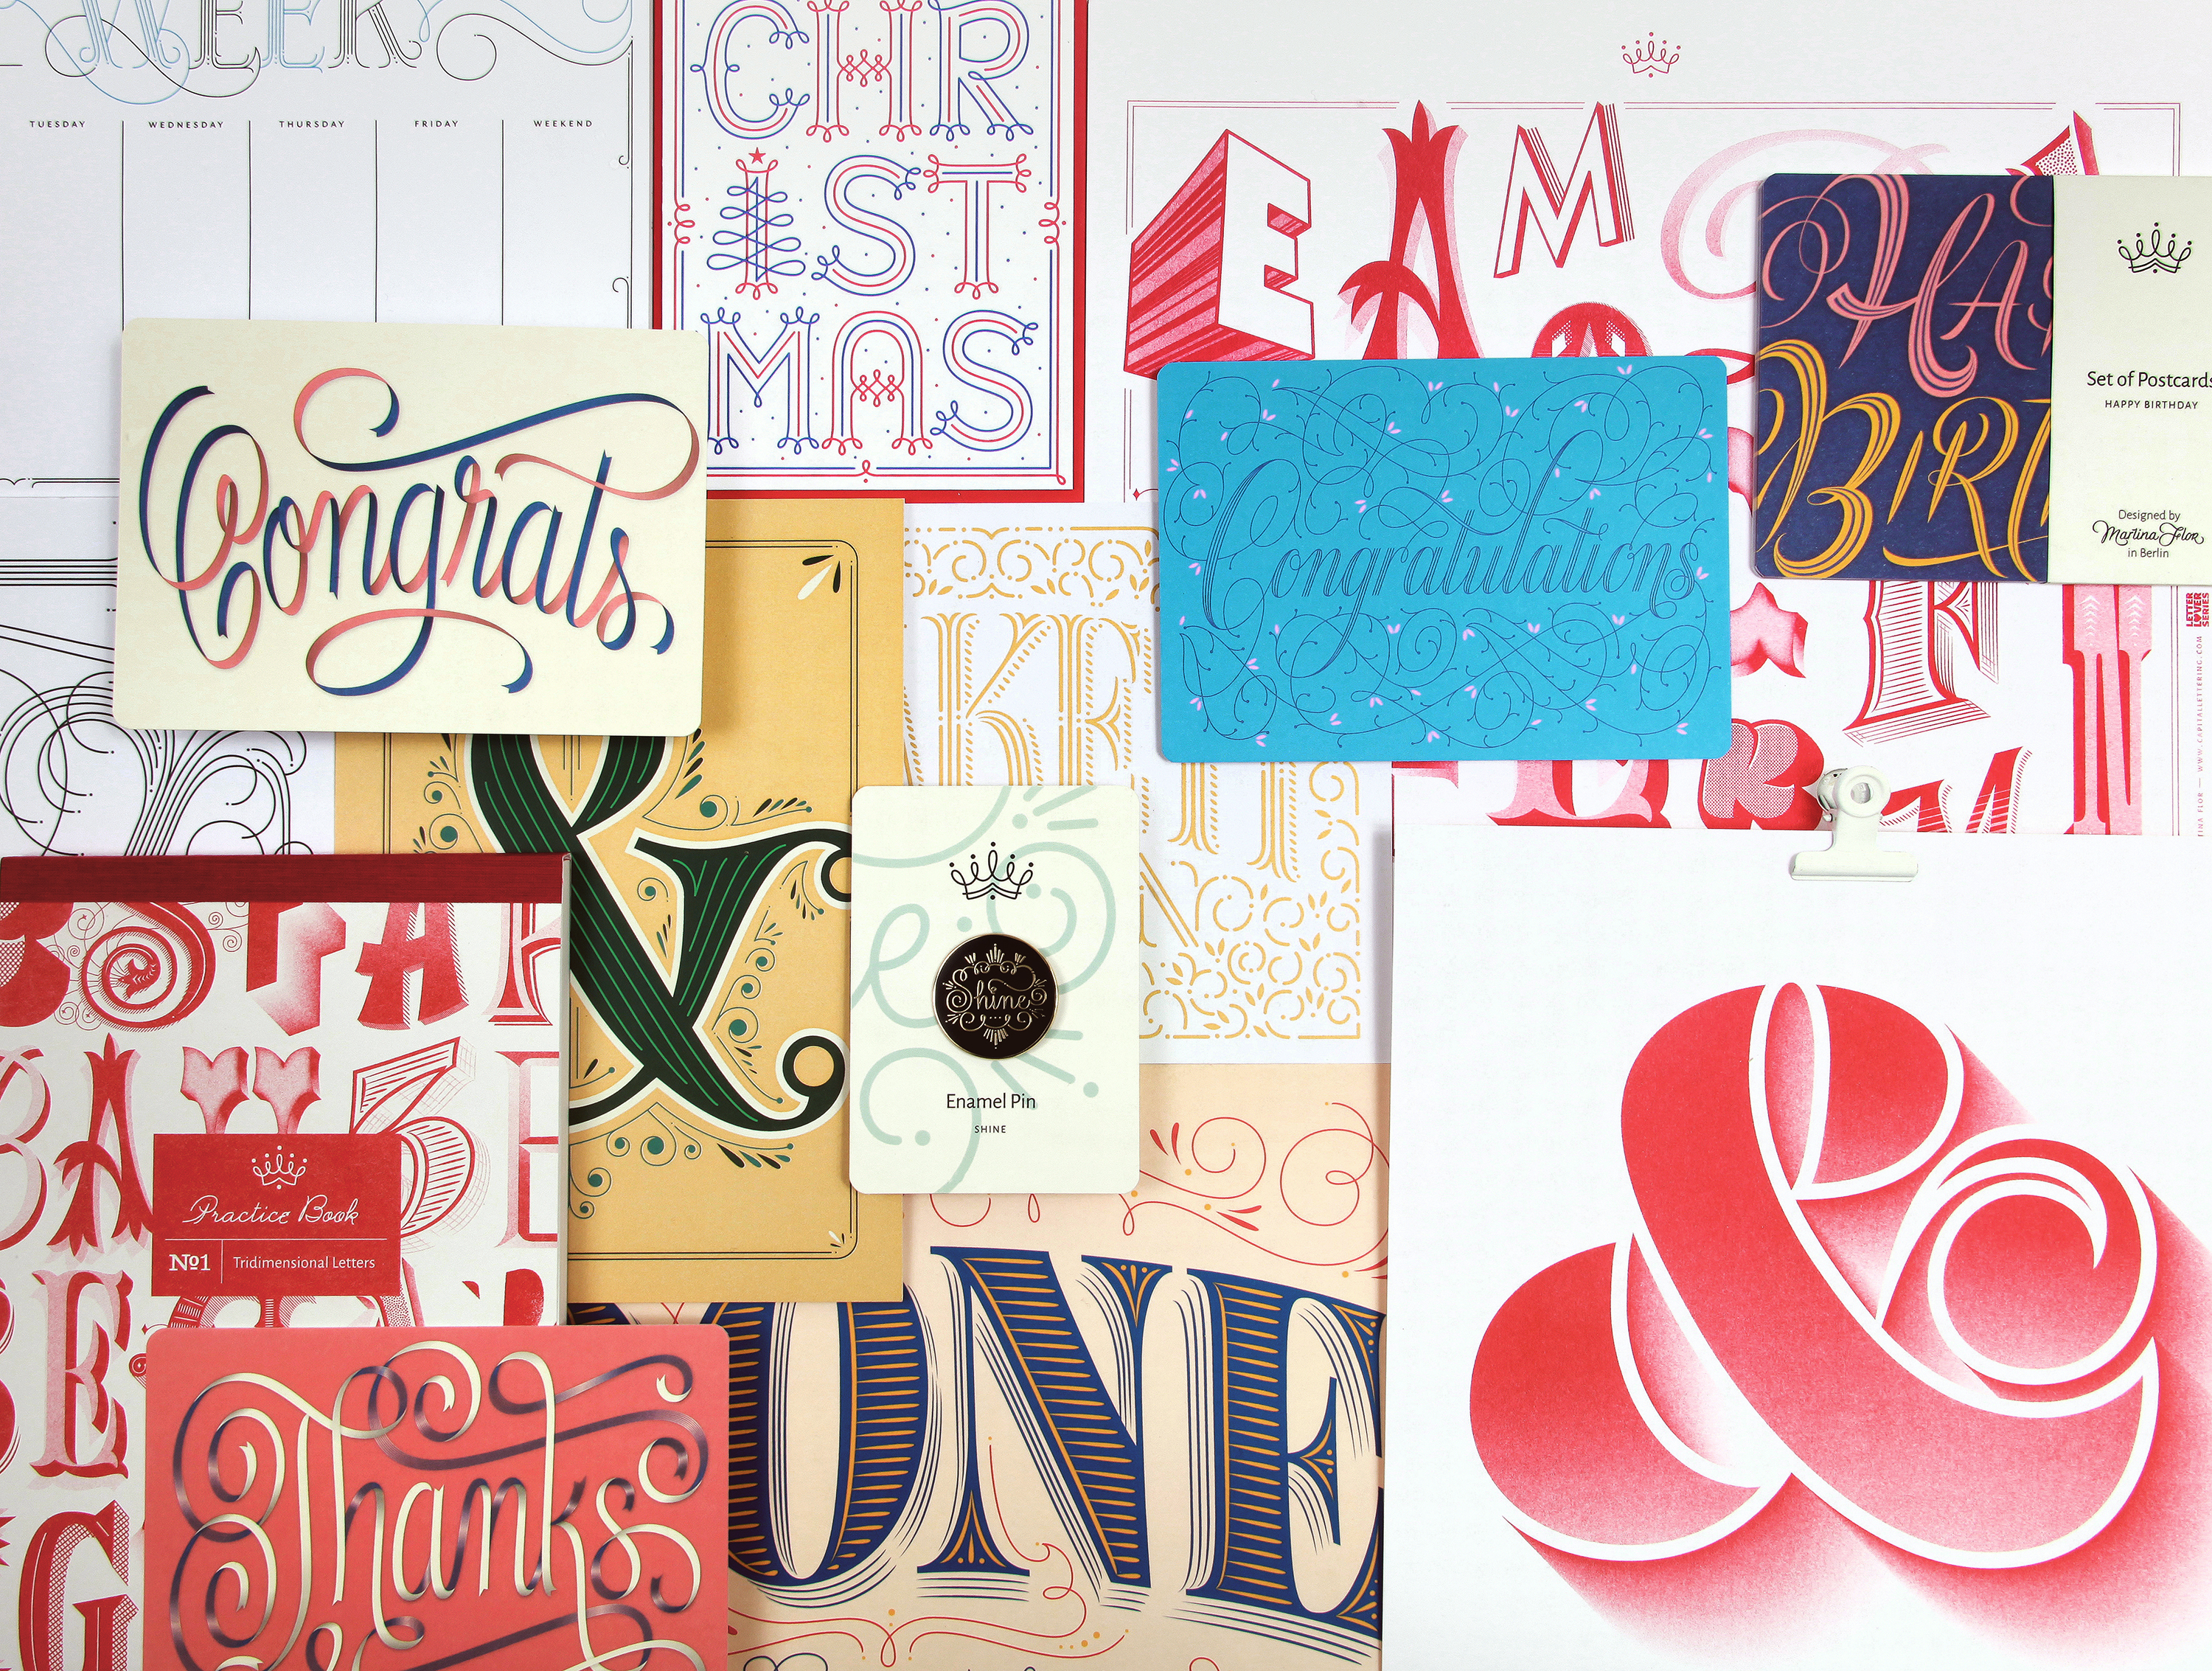 i also keep on working on my long term side project which is my workshop series ive been teaching workshops and online classes in lettering design for